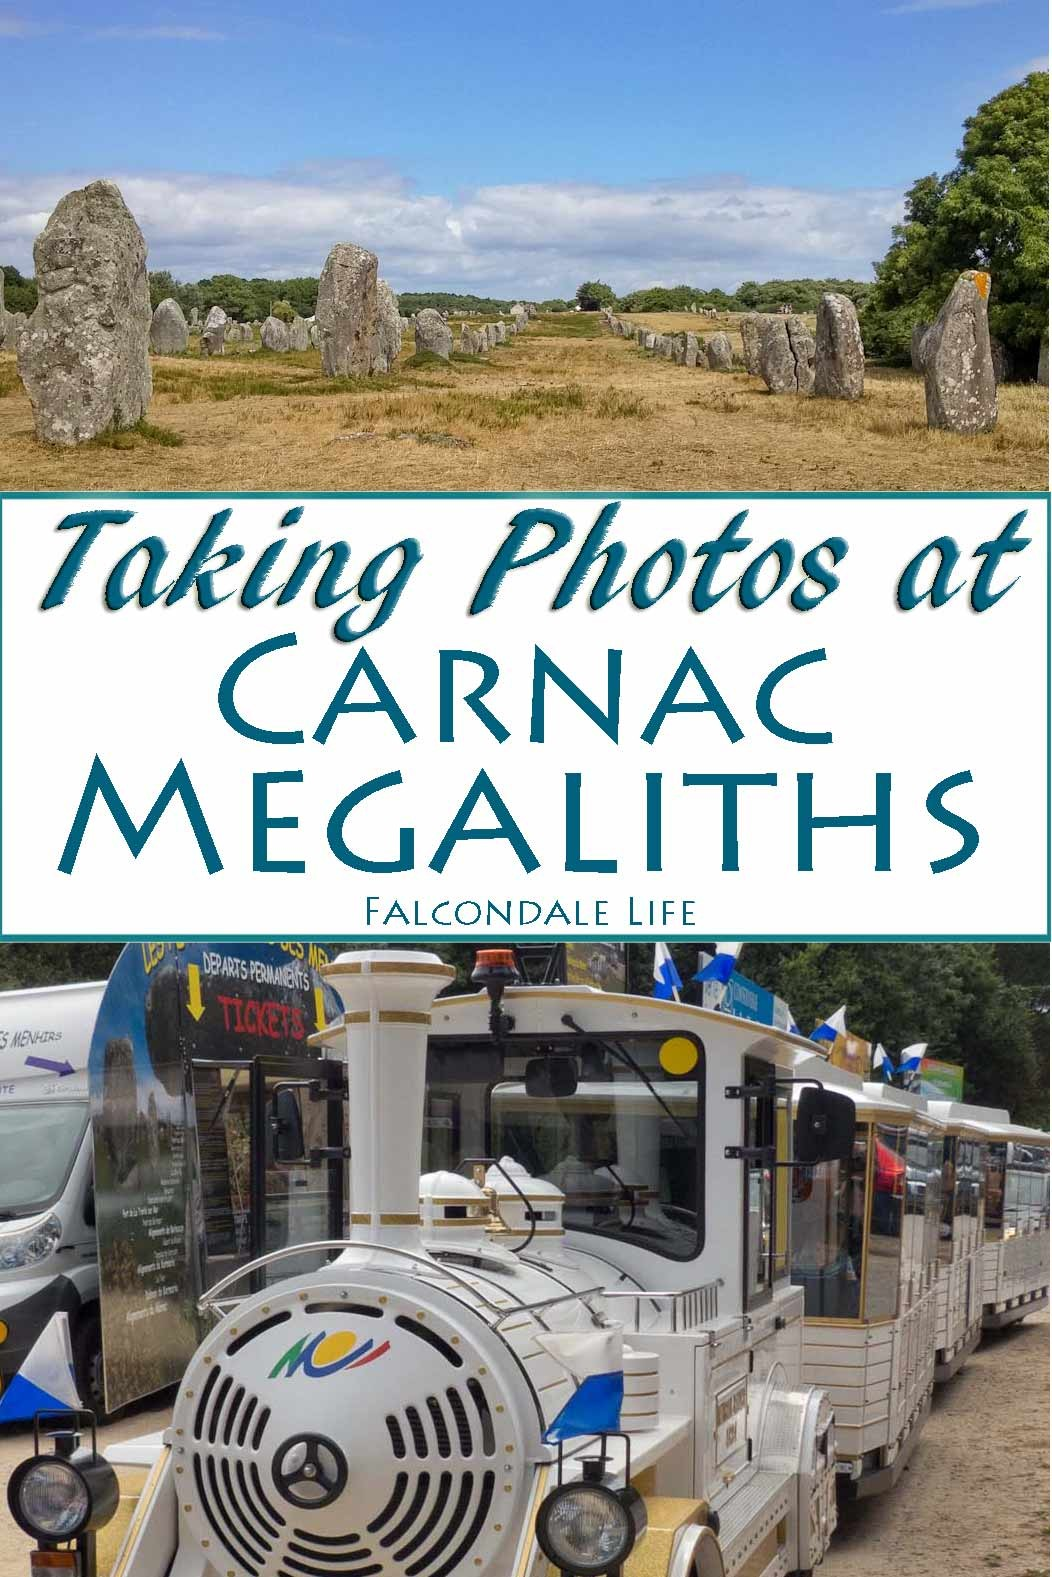 Four mistakes to avoid when taking photos at Carnac Megaliths, Brittany. We couldn't get good shots from the roadtrain tour and it was difficult on foot too. Photography and composition tips on Falcondale Life blog.